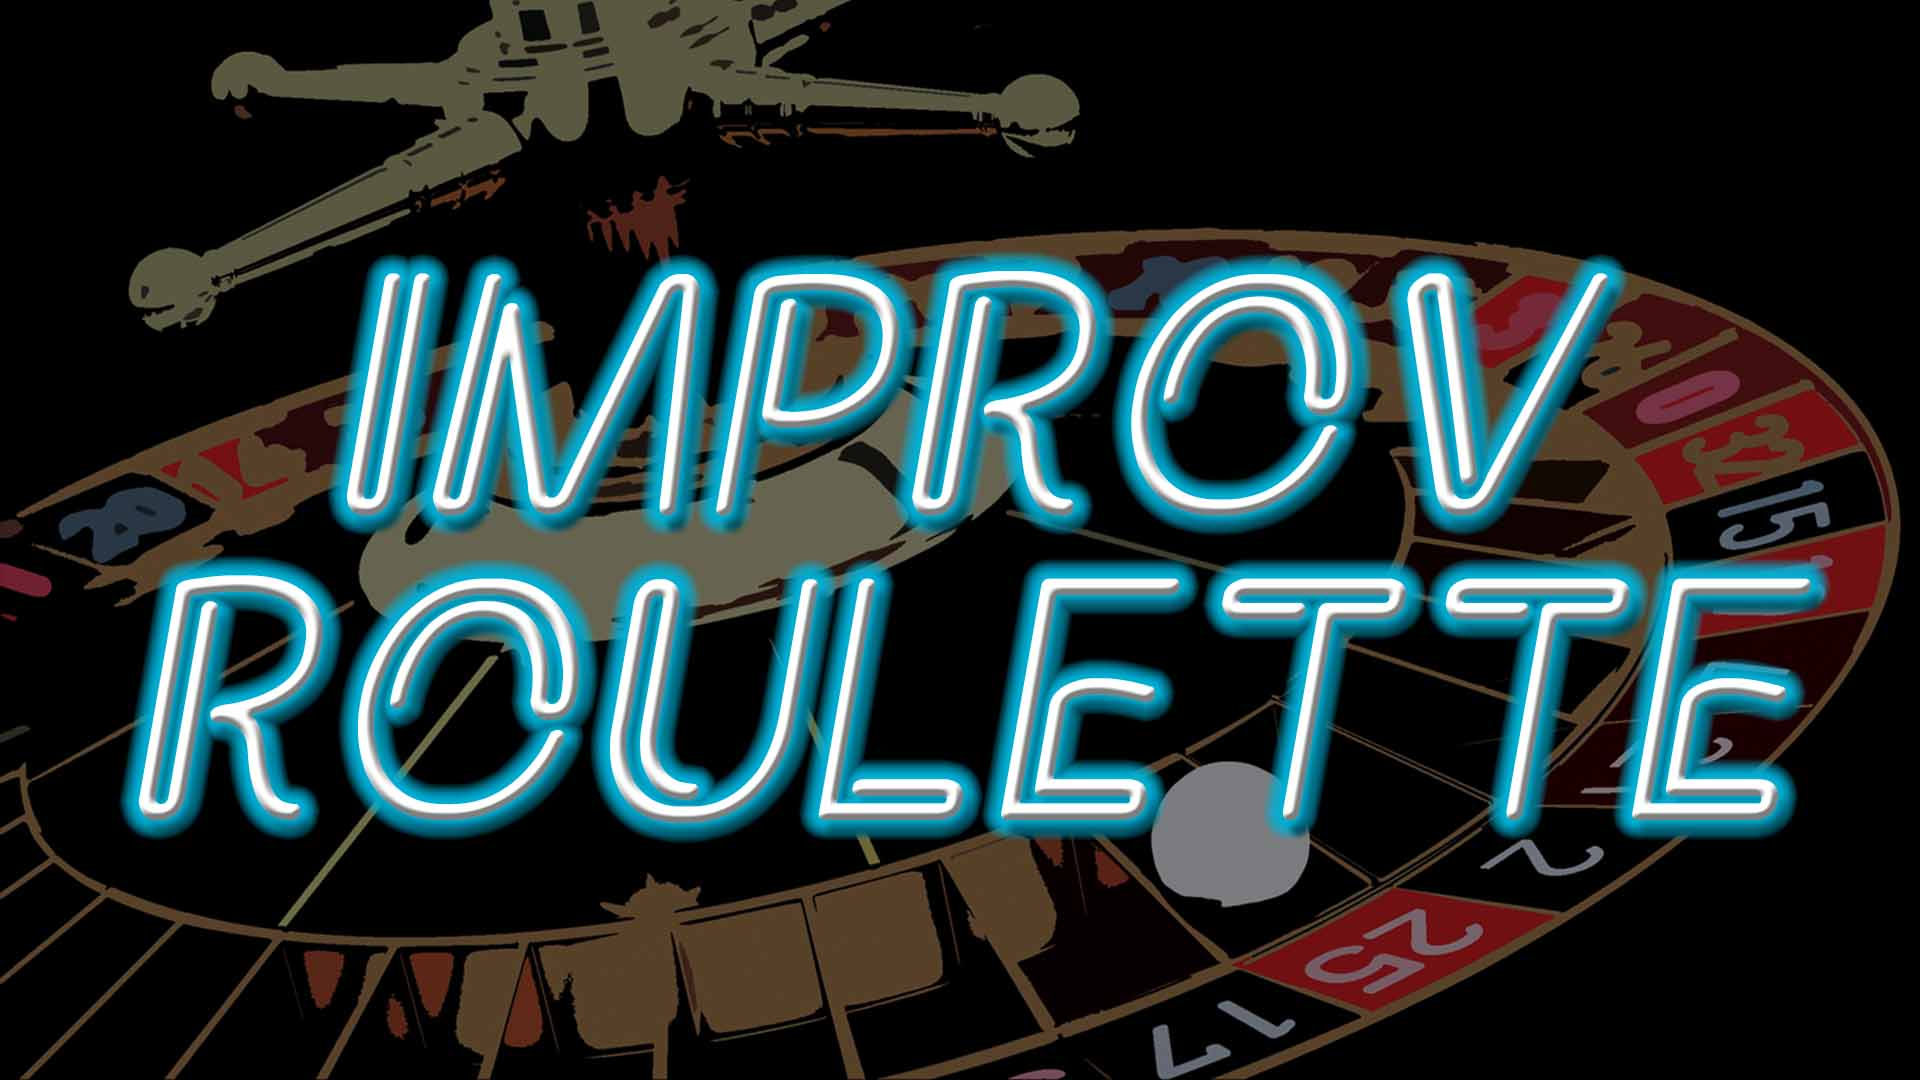 What improvisation can be done to roulette slot games downloads for pc